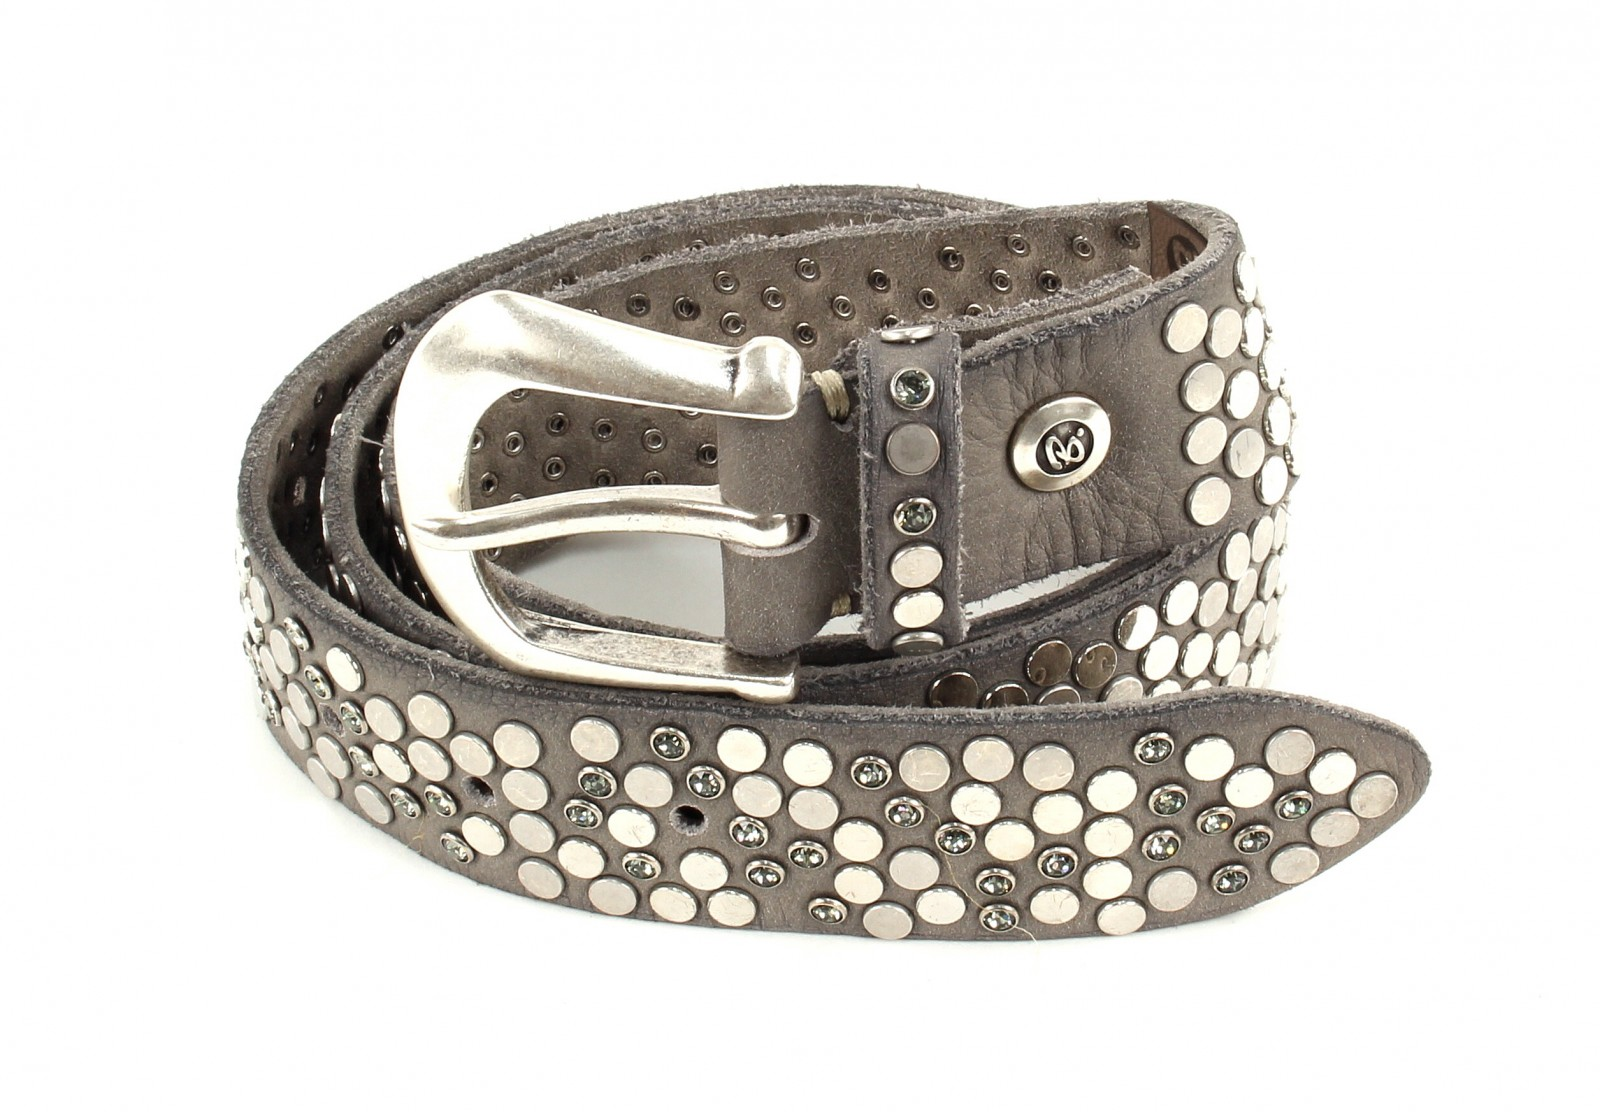 Uberlegen ... Invoice And Sofortüberweisung.deb.belt Studded Belt Mit Strass W85 Taupe  / 179,00 U20ac*Only Possible If You Pay By Paypal, Amazon Payments, Credit  Card, ...